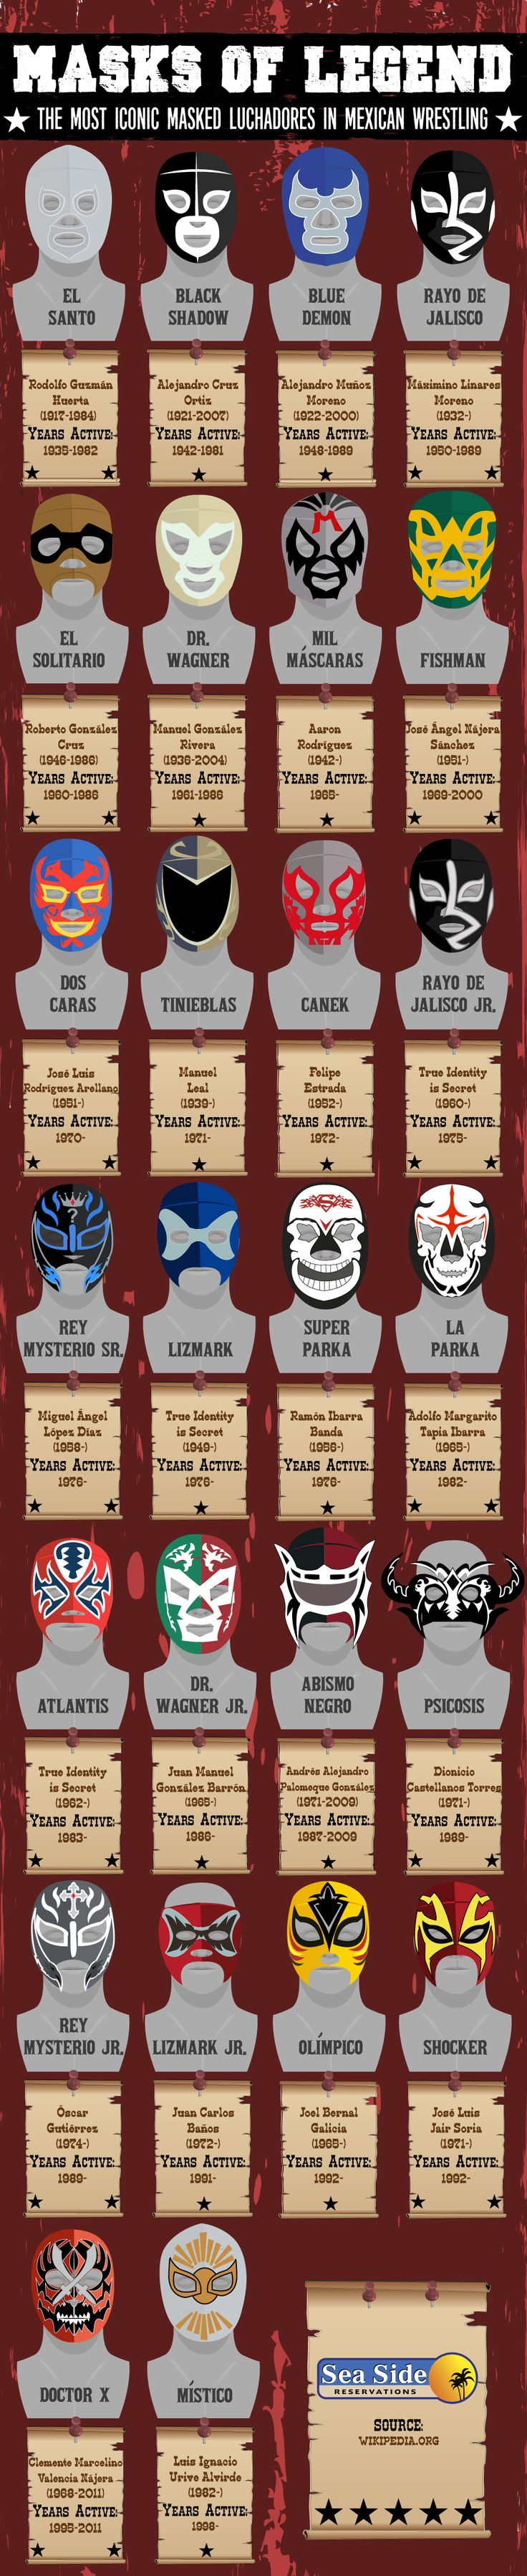 Mexican wrestlers tent to use alot of lucha libre masks to hide their identity while fighting and also to show a sign of respect to Mexican wrestlers and Mexico its self it is a very story telling item and very interesting to study.